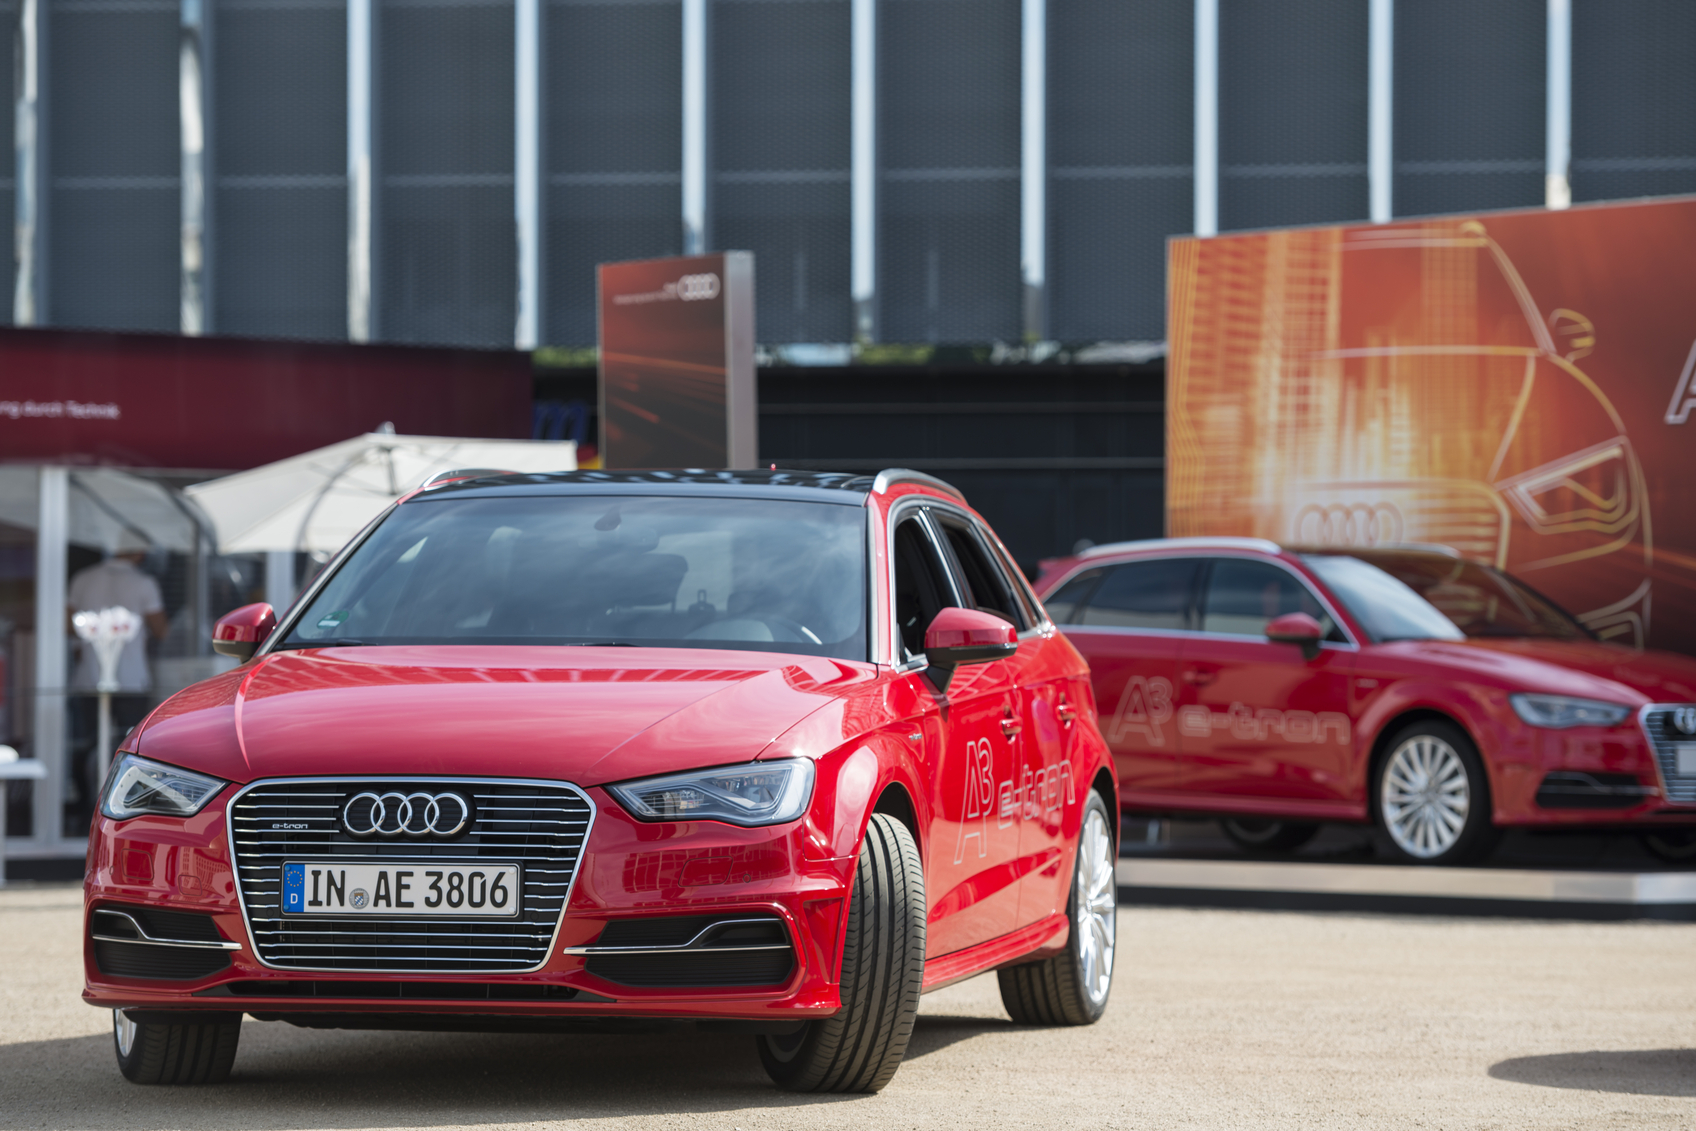 Frankfurt am Main, Germany- July 18, 2014: Audi A3 e-tron at a public displayed in a public ground near a shopping mall. This car is a Hybrid car, based on the AUDI A3 and will be launched in 2015. Audi AG is a German manufacturer of automobiles, the company is headquartered in Ingolstadt, Germany, and is a wholly owned subsidiary of Volkswagen AG. In the background two spectators can be seen.